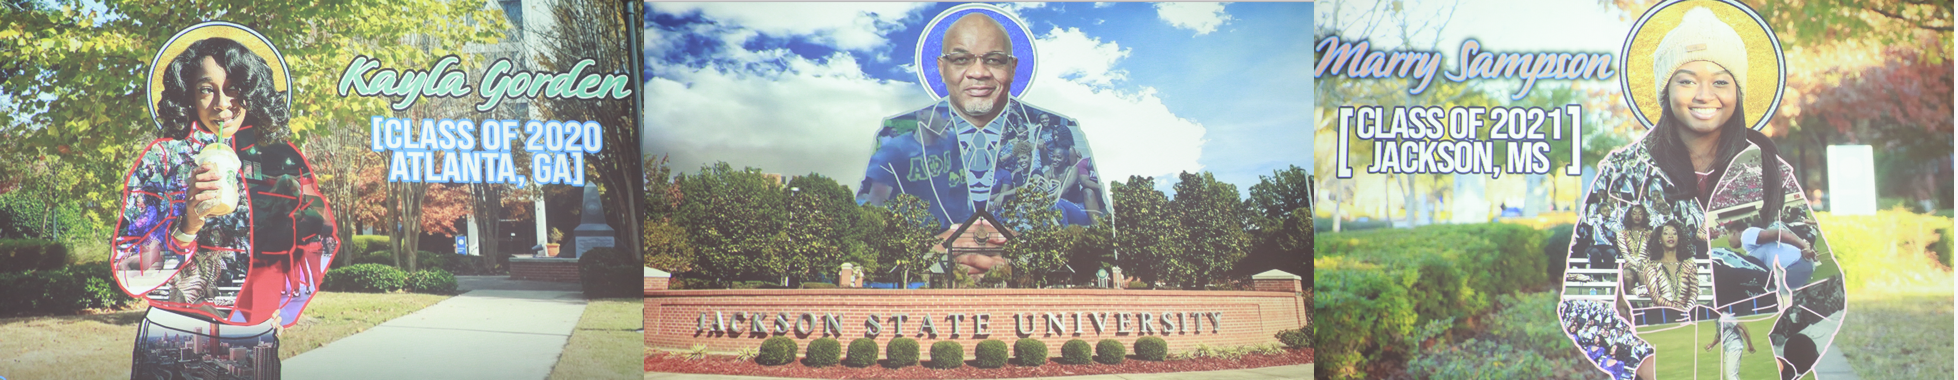 Images of Jsette captain Kayla Gorden, JSU President Dr. William B. Bynum and Jsette Mary Sampson were displayed during Kalin Norman's slideshow. The slideshow images had videos that moved within them that ultimately tells the story of Jackson State University. (Photos by Aron Smith/JSU)